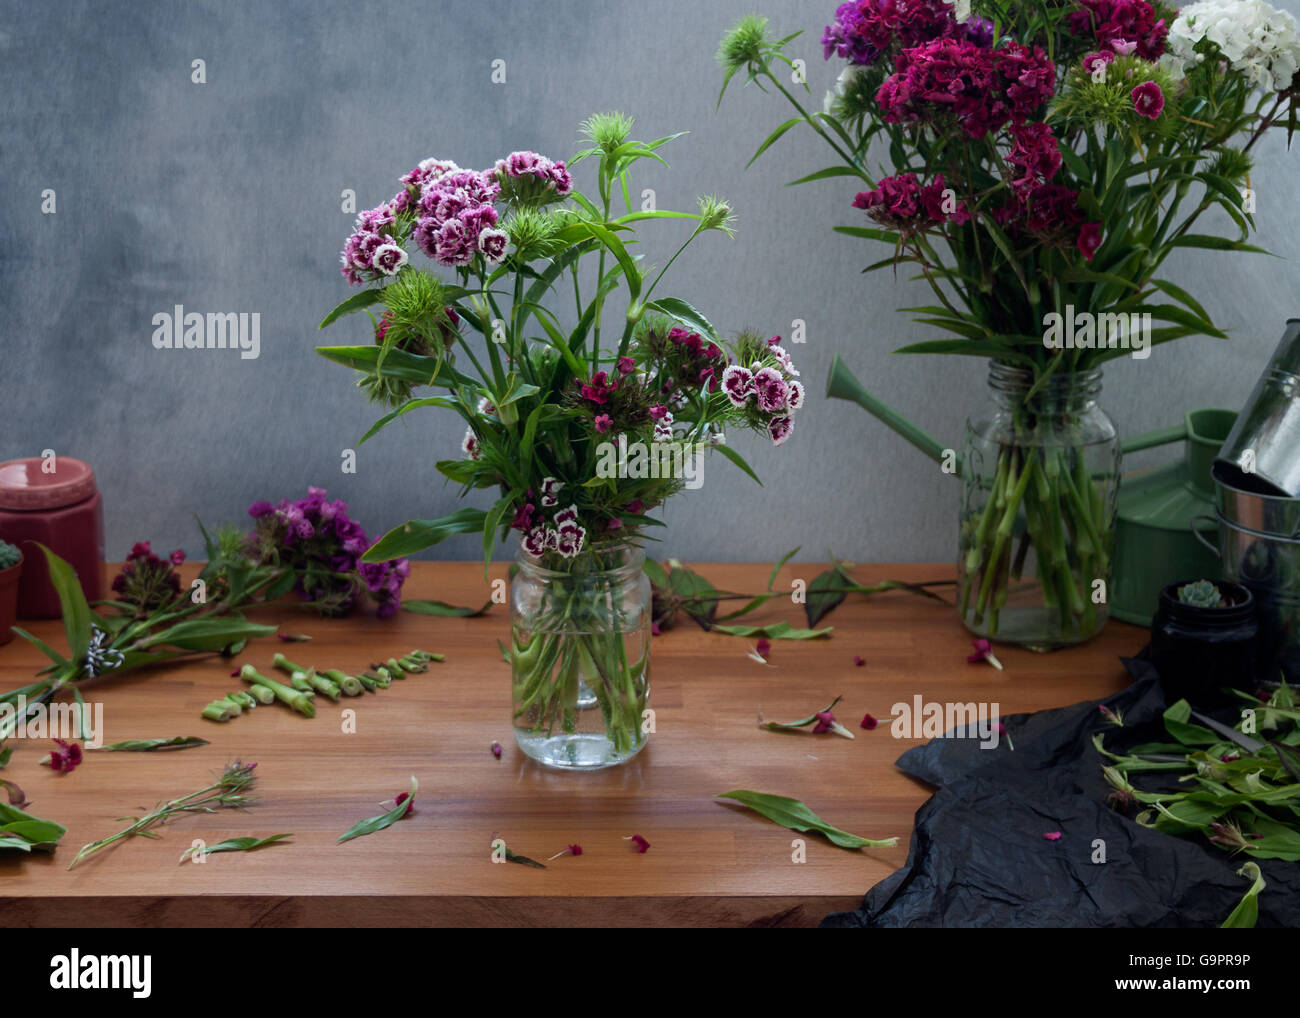 Lifestyle Floristry Image with Sweet William flowers - Stock Image